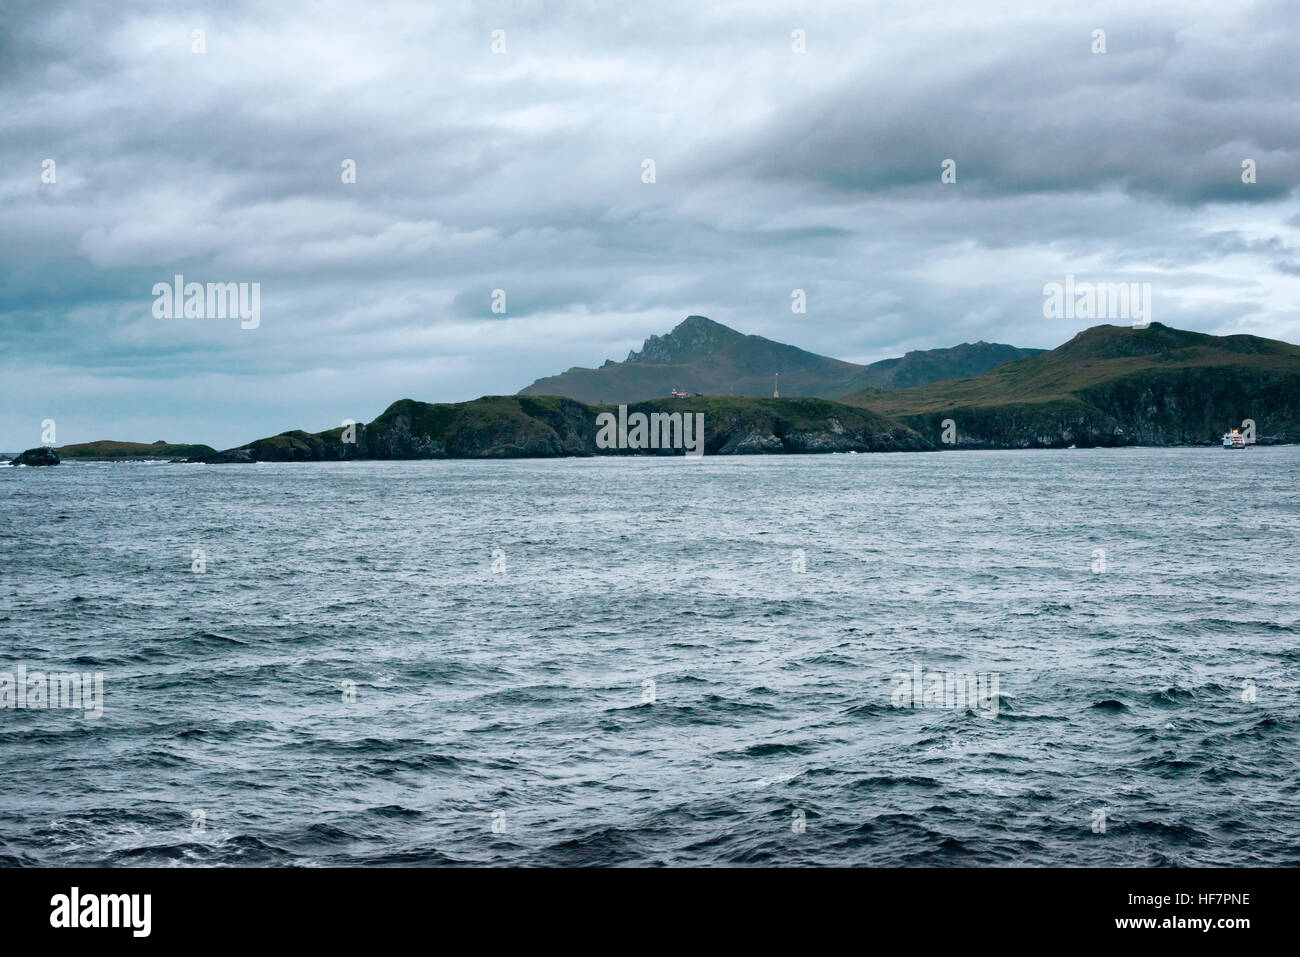 Cape Horn Lighthouse with Outpost and Chile Flag, Drake Passage, Chile - Stock Image